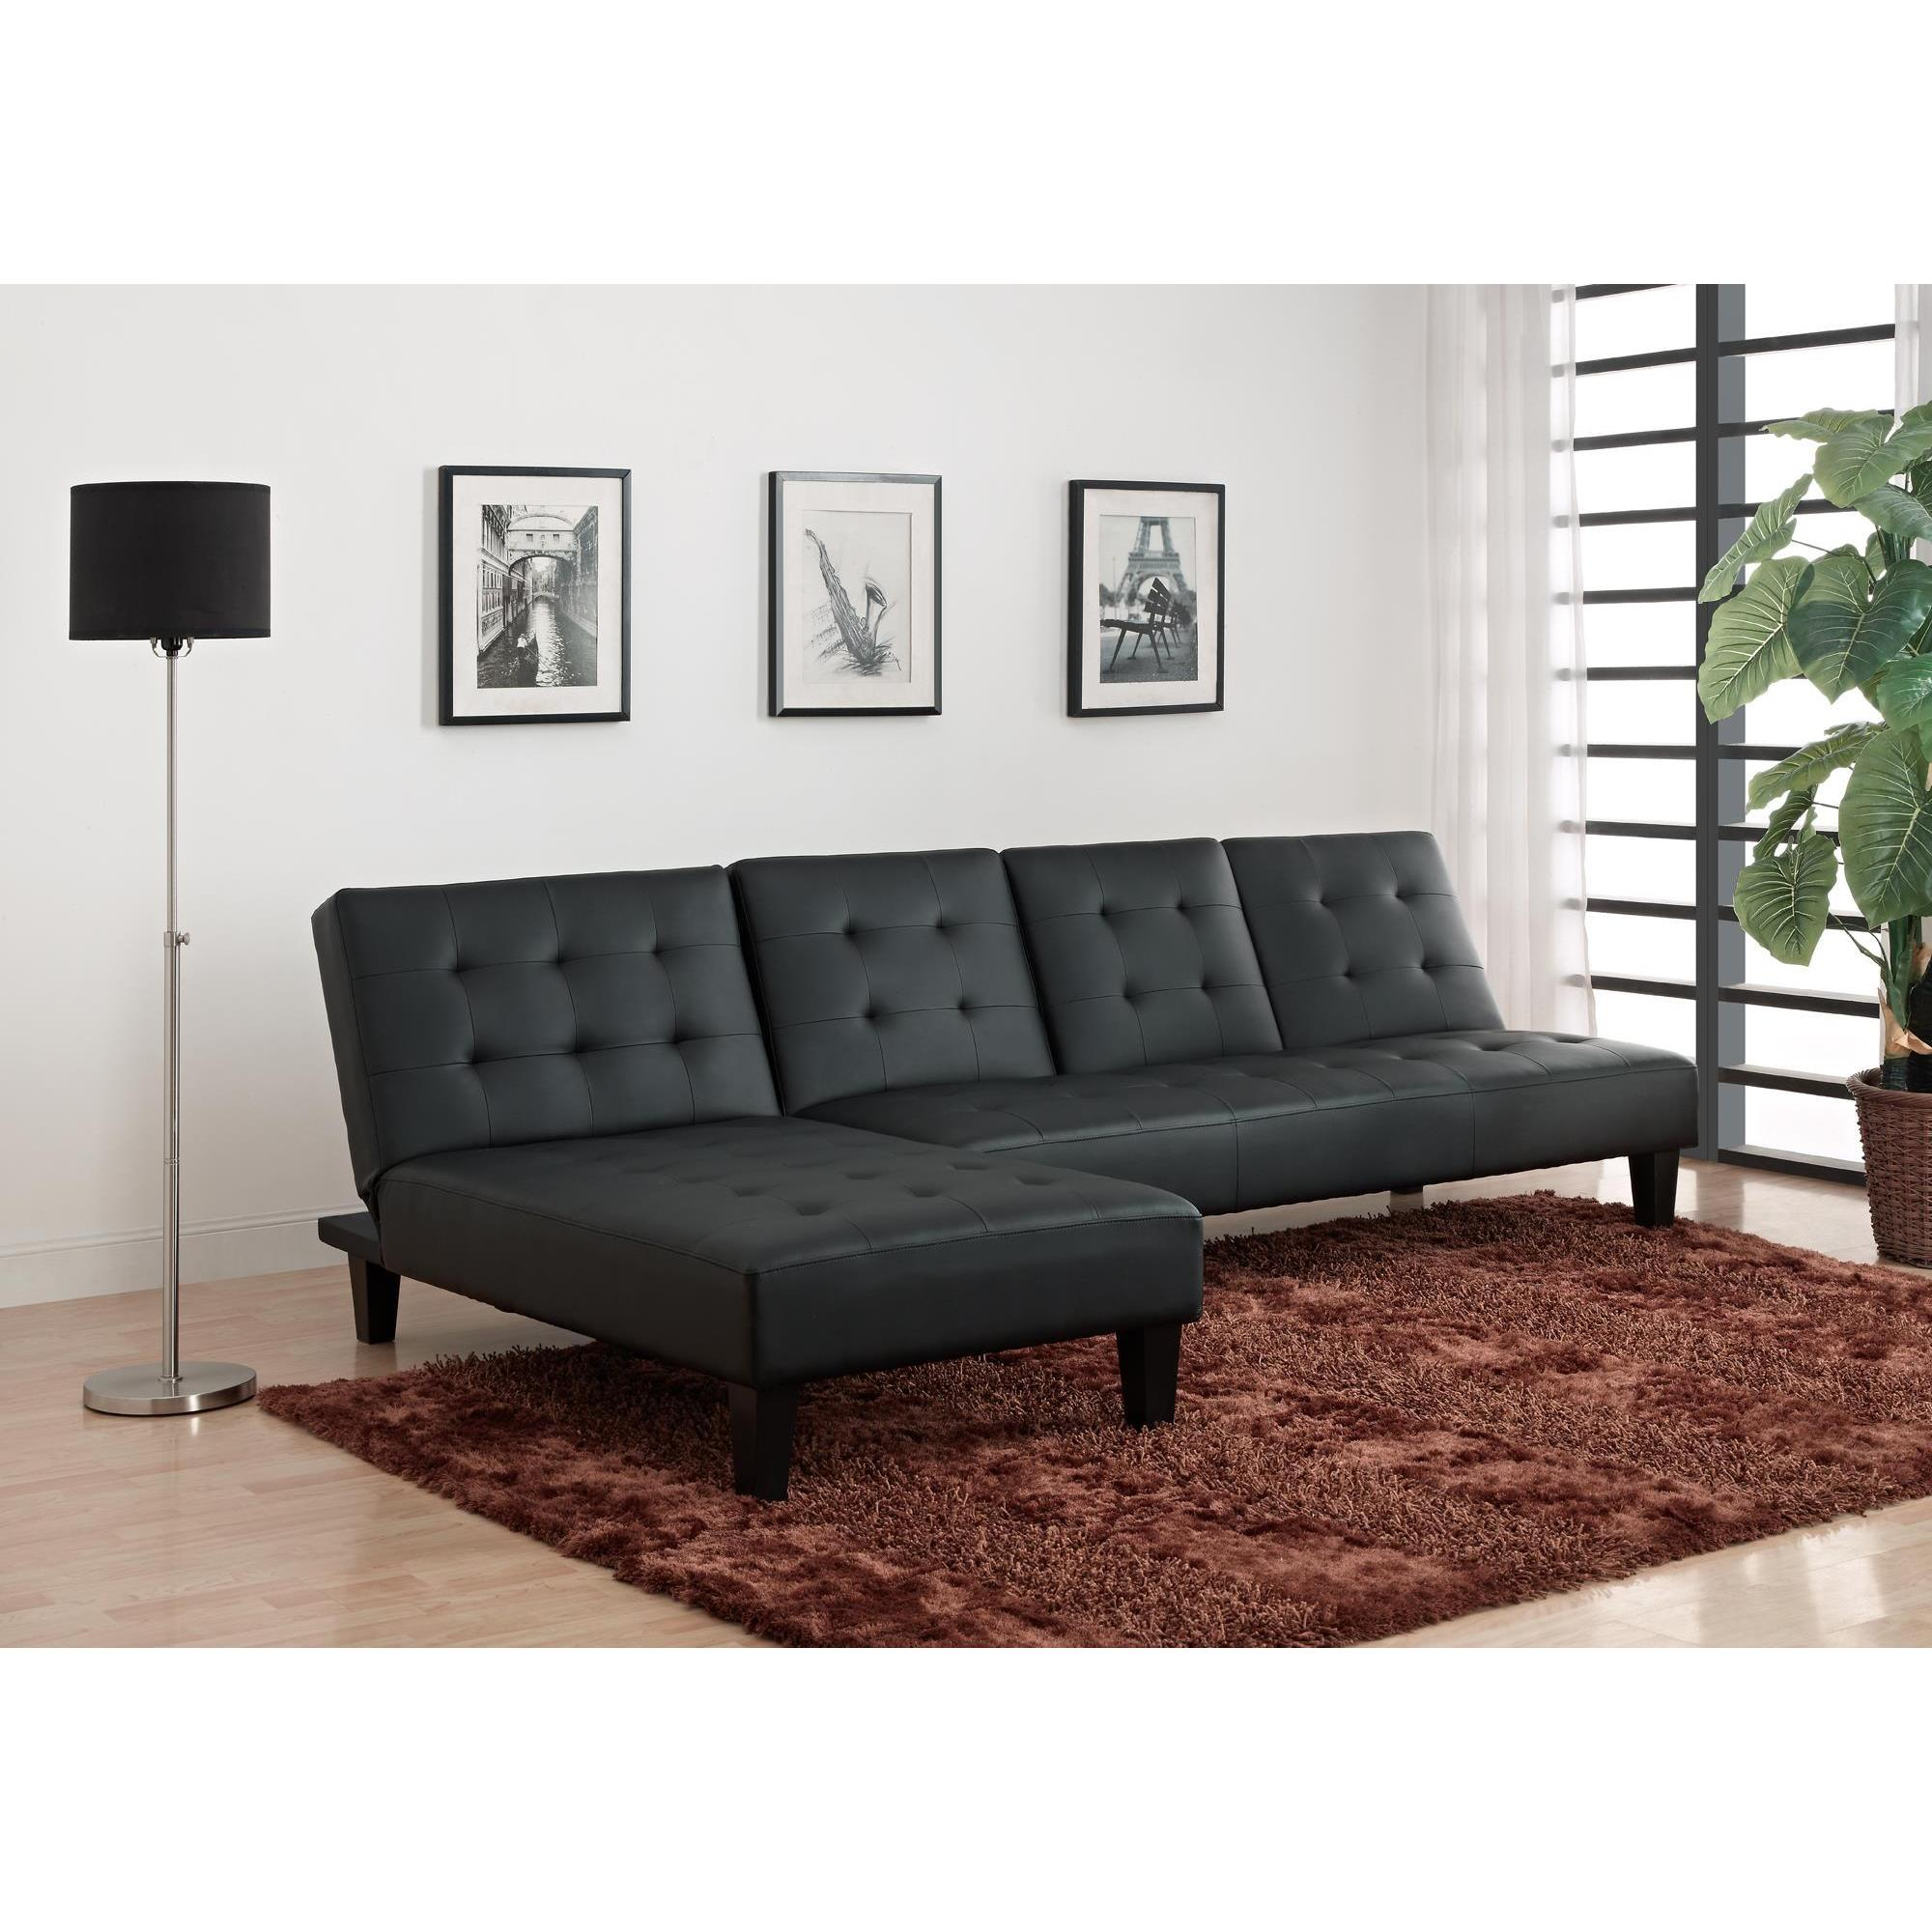 DHP Julia Black Chaise Lounger Free Shipping Today Overstock